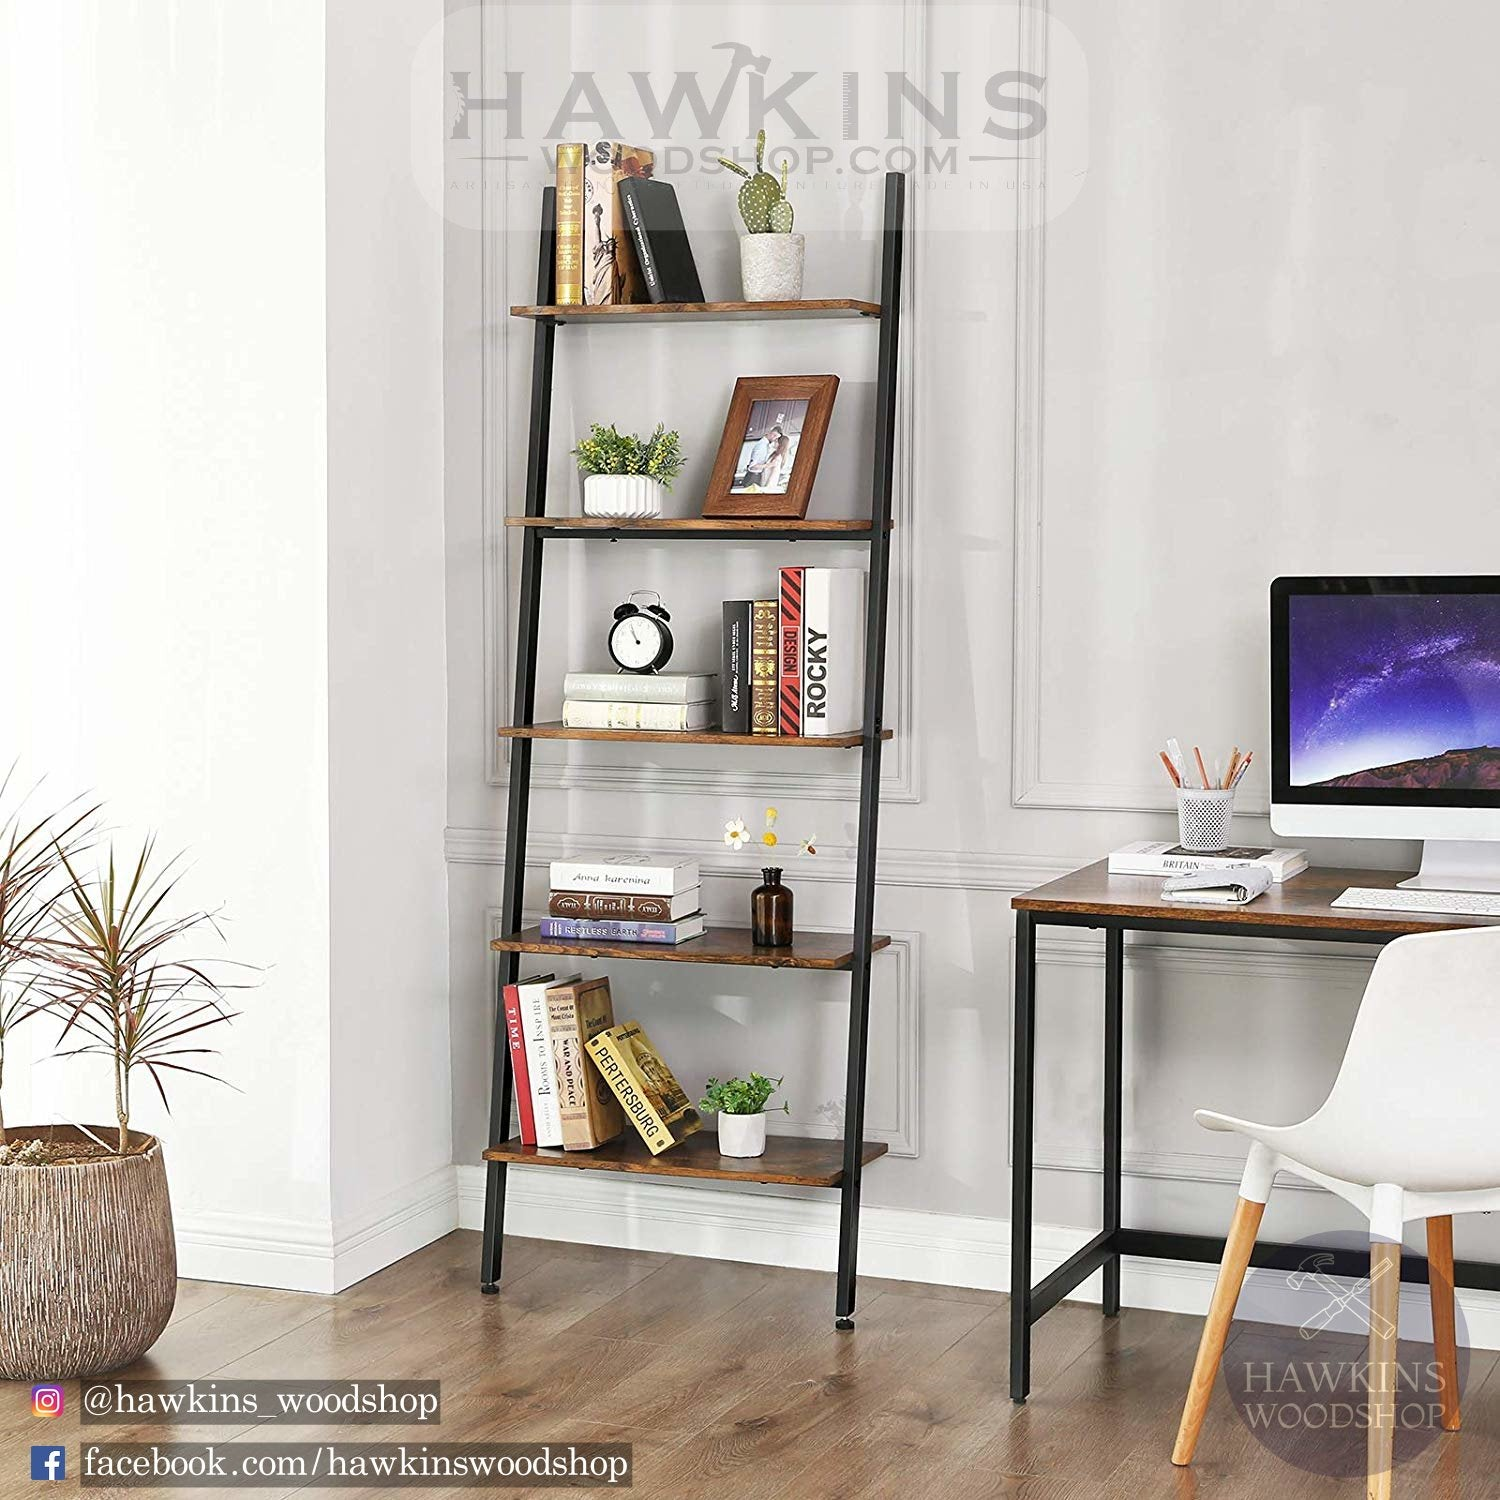 Enjoy fast, free nationwide shipping!  Family owned and operated, HawkinsWoodshop.com is your one stop shop for affordable furniture.  Shop HawkinsWoodshop.com for solid wood & metal modern, traditional, contemporary, industrial, custom, rustic, and farmhouse furniture including our Industrial Ladder Shelf 5-Tier Bookshelf Rack, Wall Shelf for Living Room Kitchen Office Solid Iron.